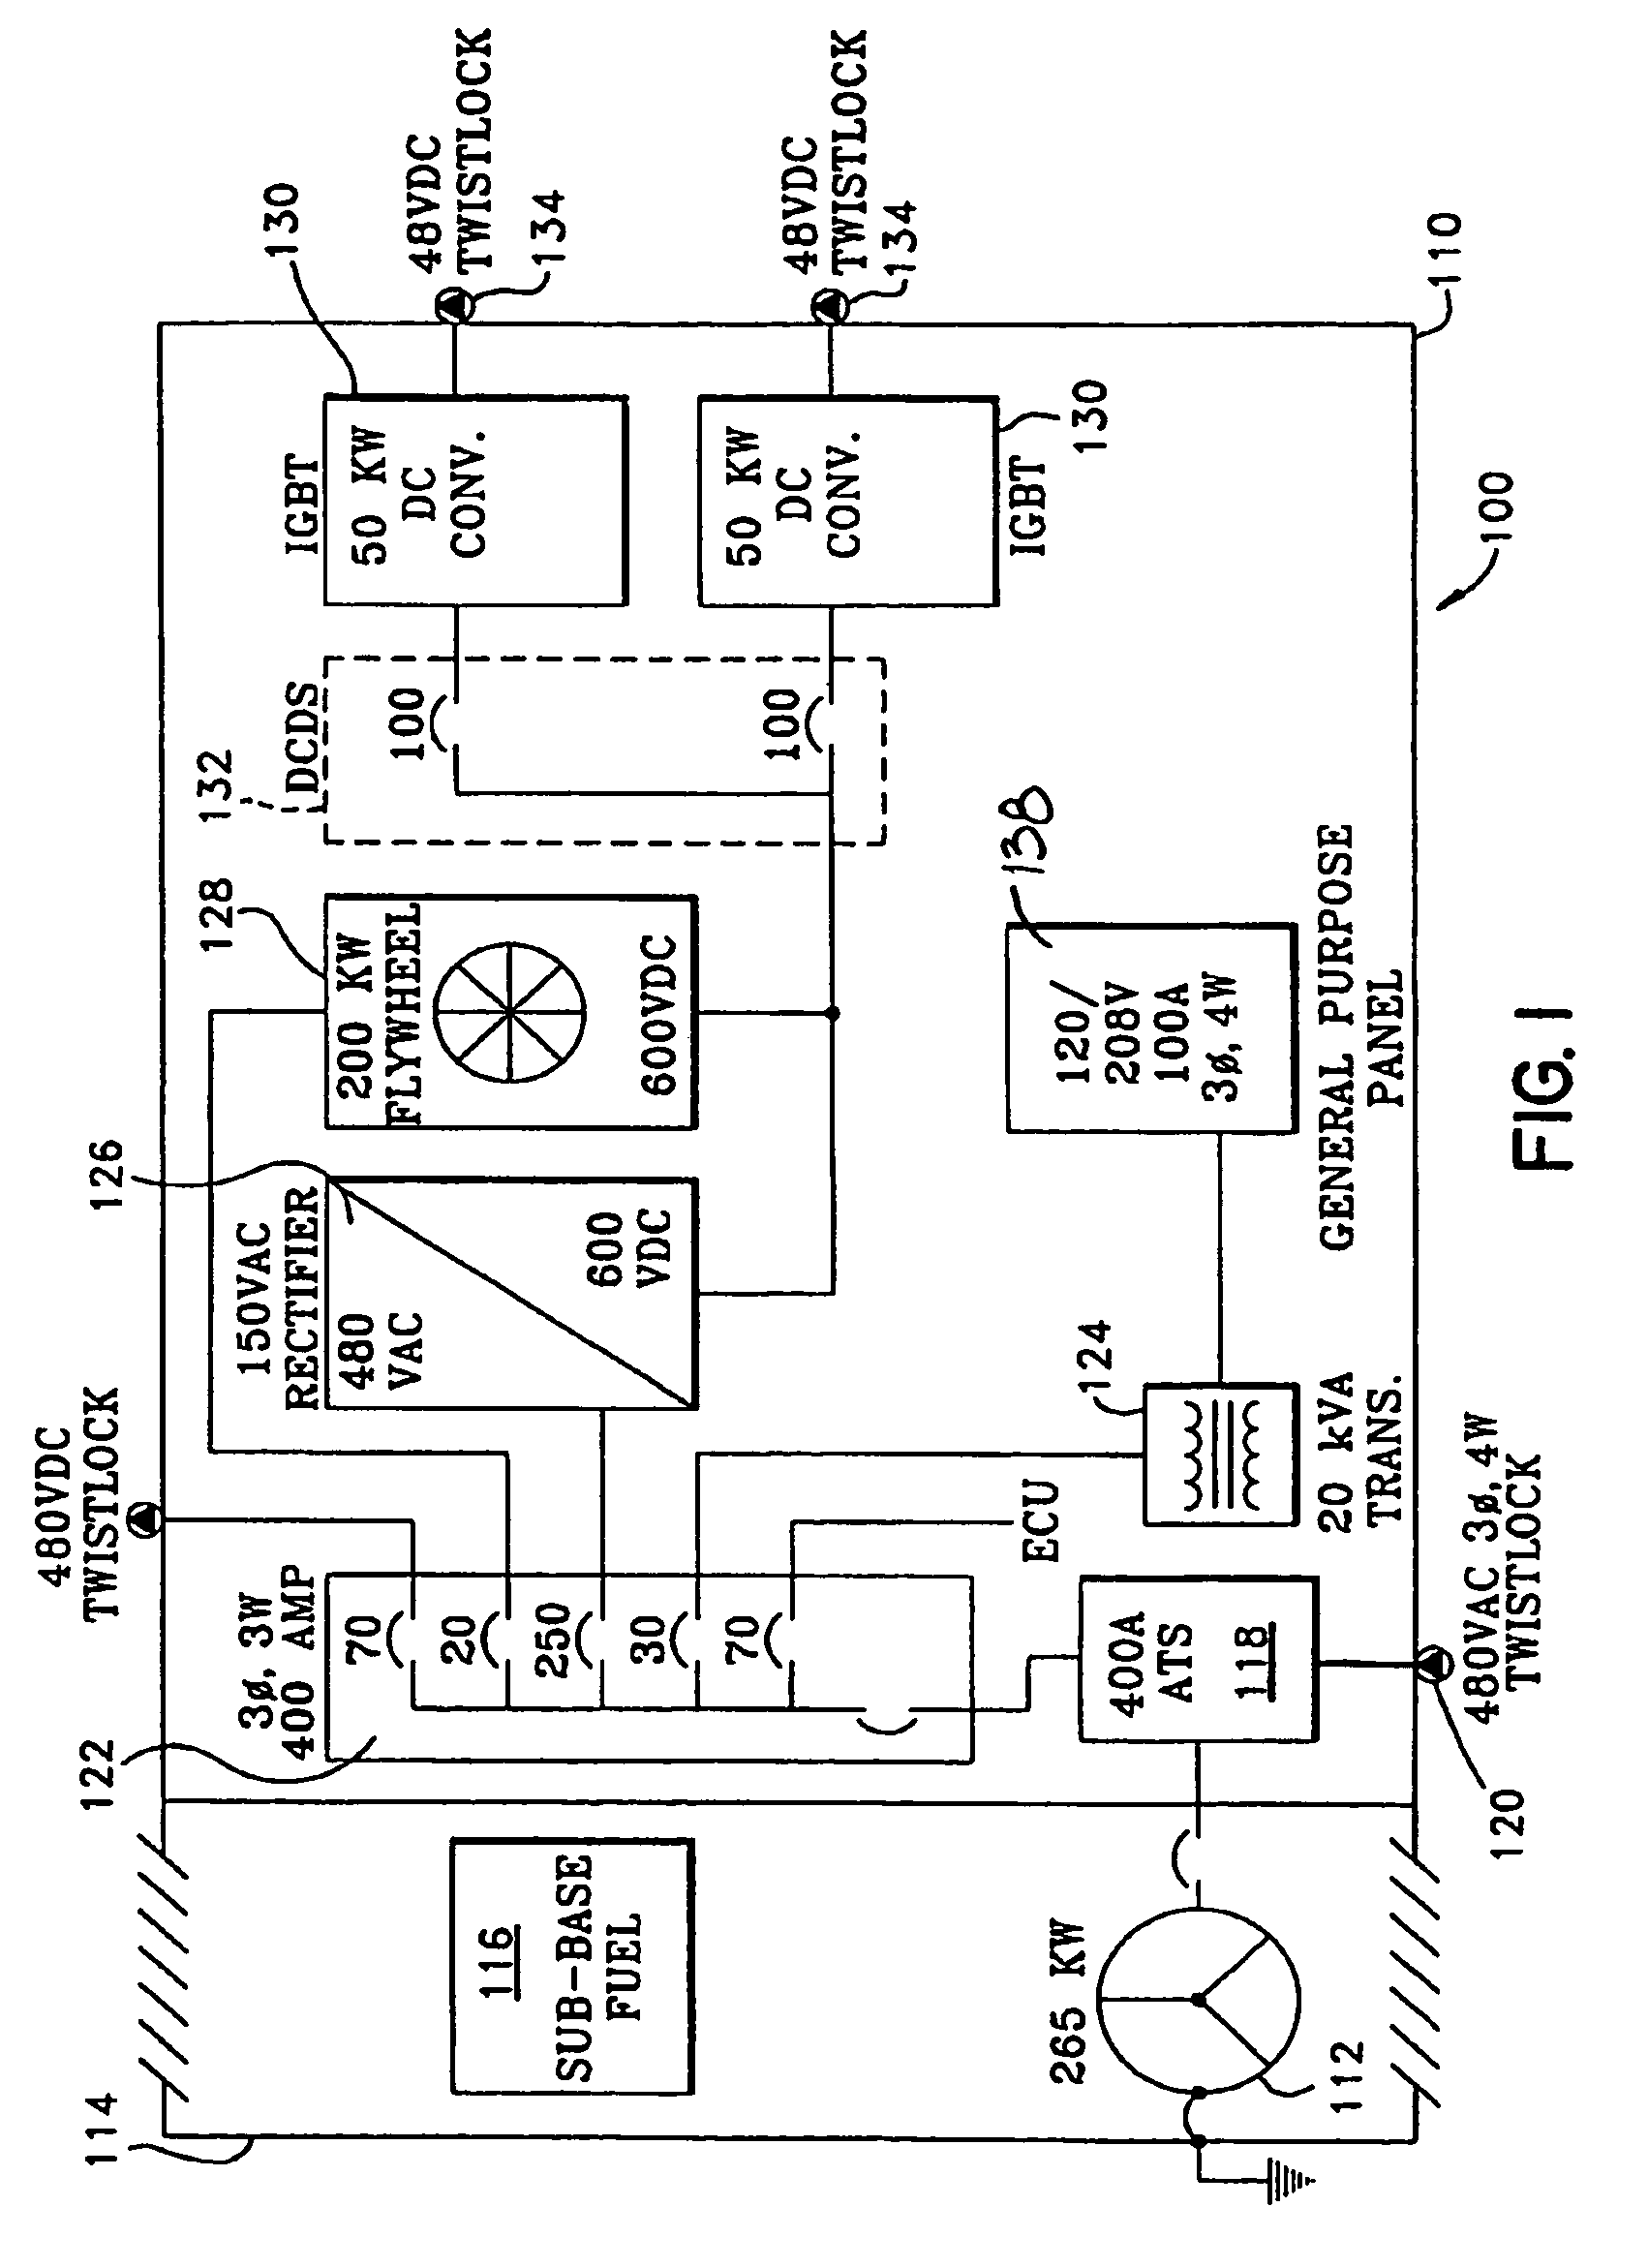 panelboard wiring diagram of 208 volt 3 phase square d panelboard standard electrical panel